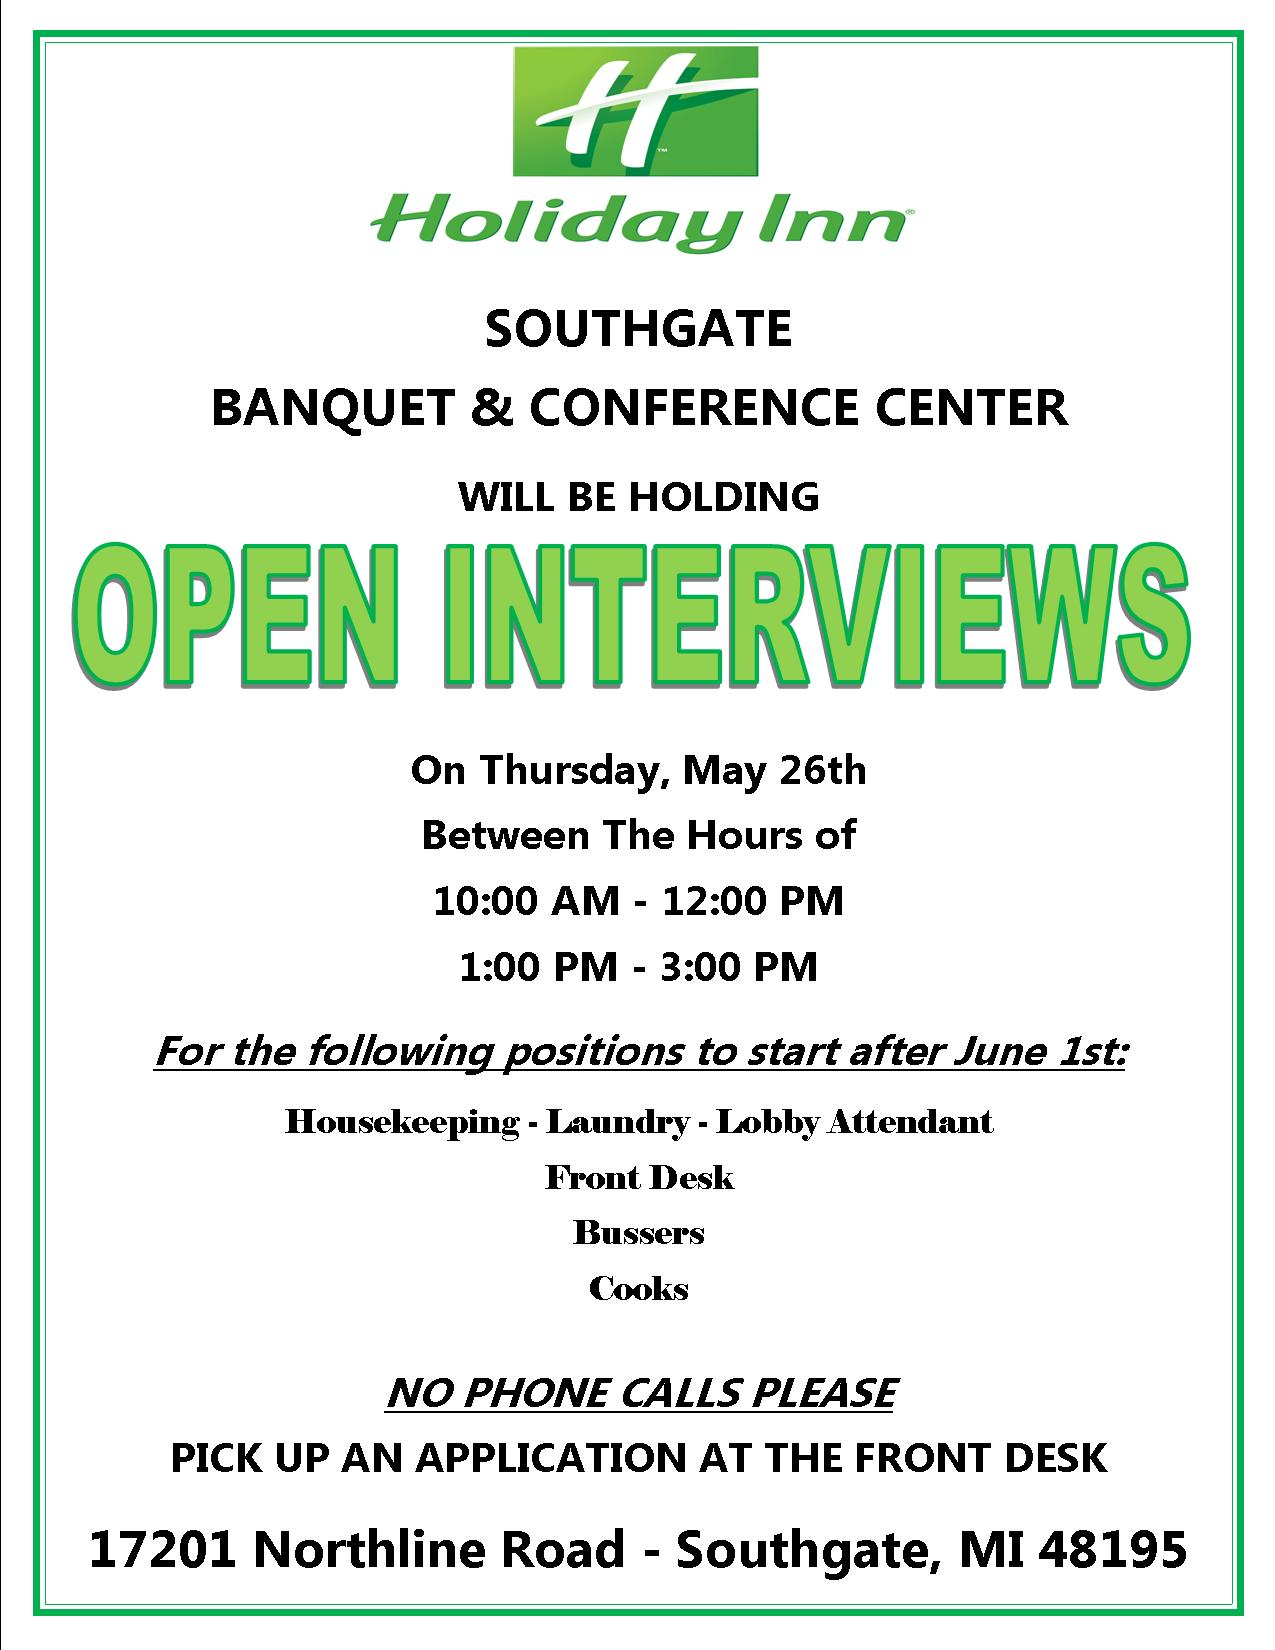 Now Hiring Open Interviews On Thursday, May 26th 2016 - Holiday Inn Southgate Banquet and ...